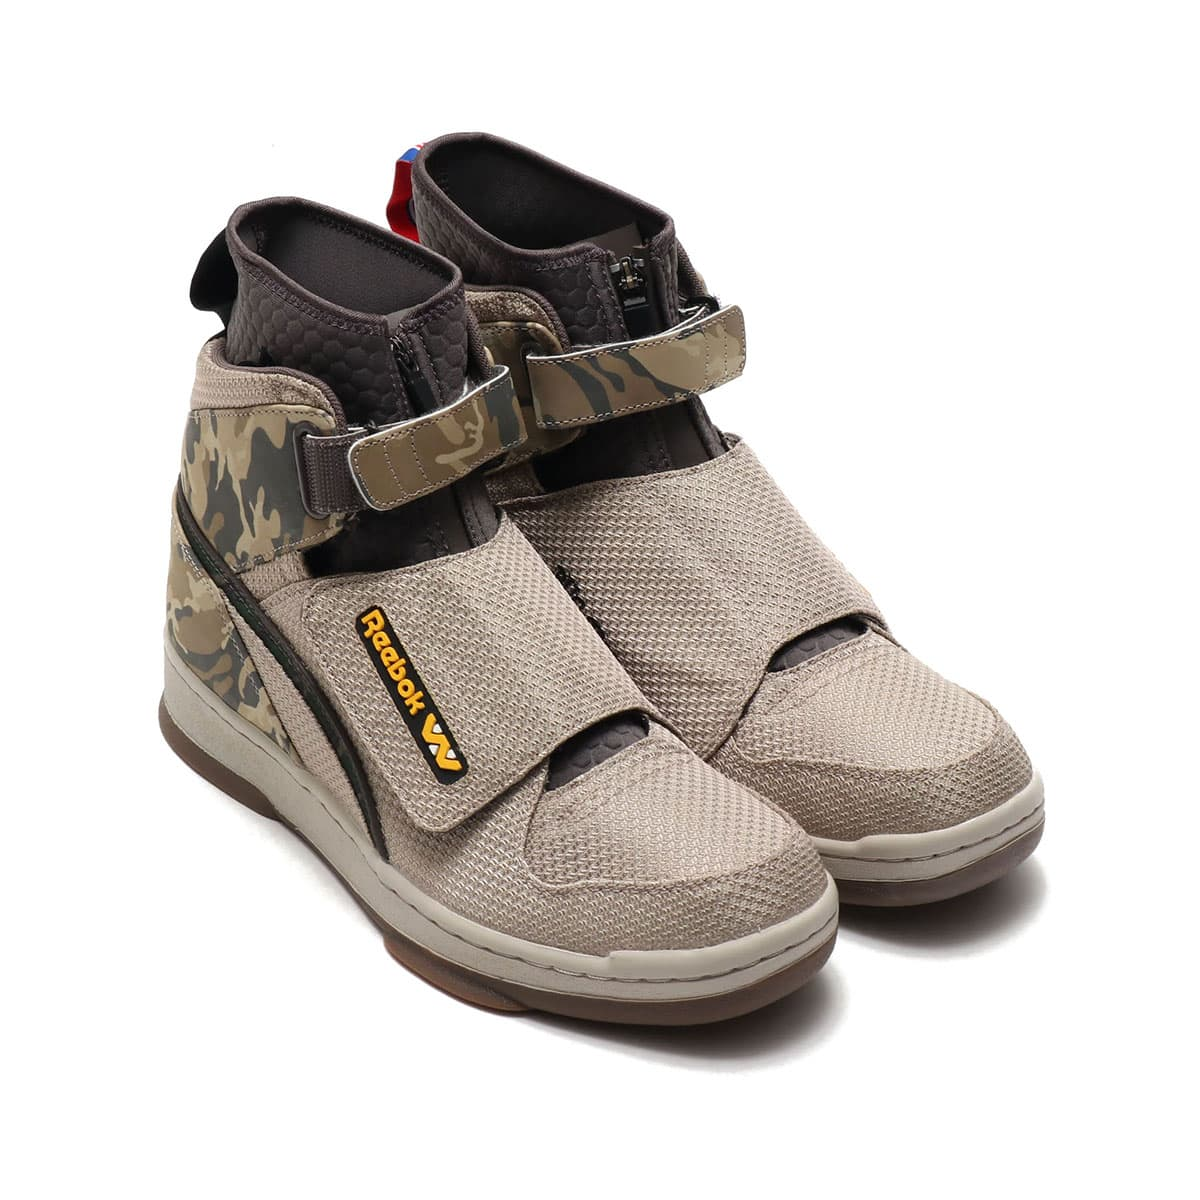 Reebok U.S.C.M. BUG STOMPER RIGHT SAND/BLACK/SAND STONE 20SS-S_photo_large